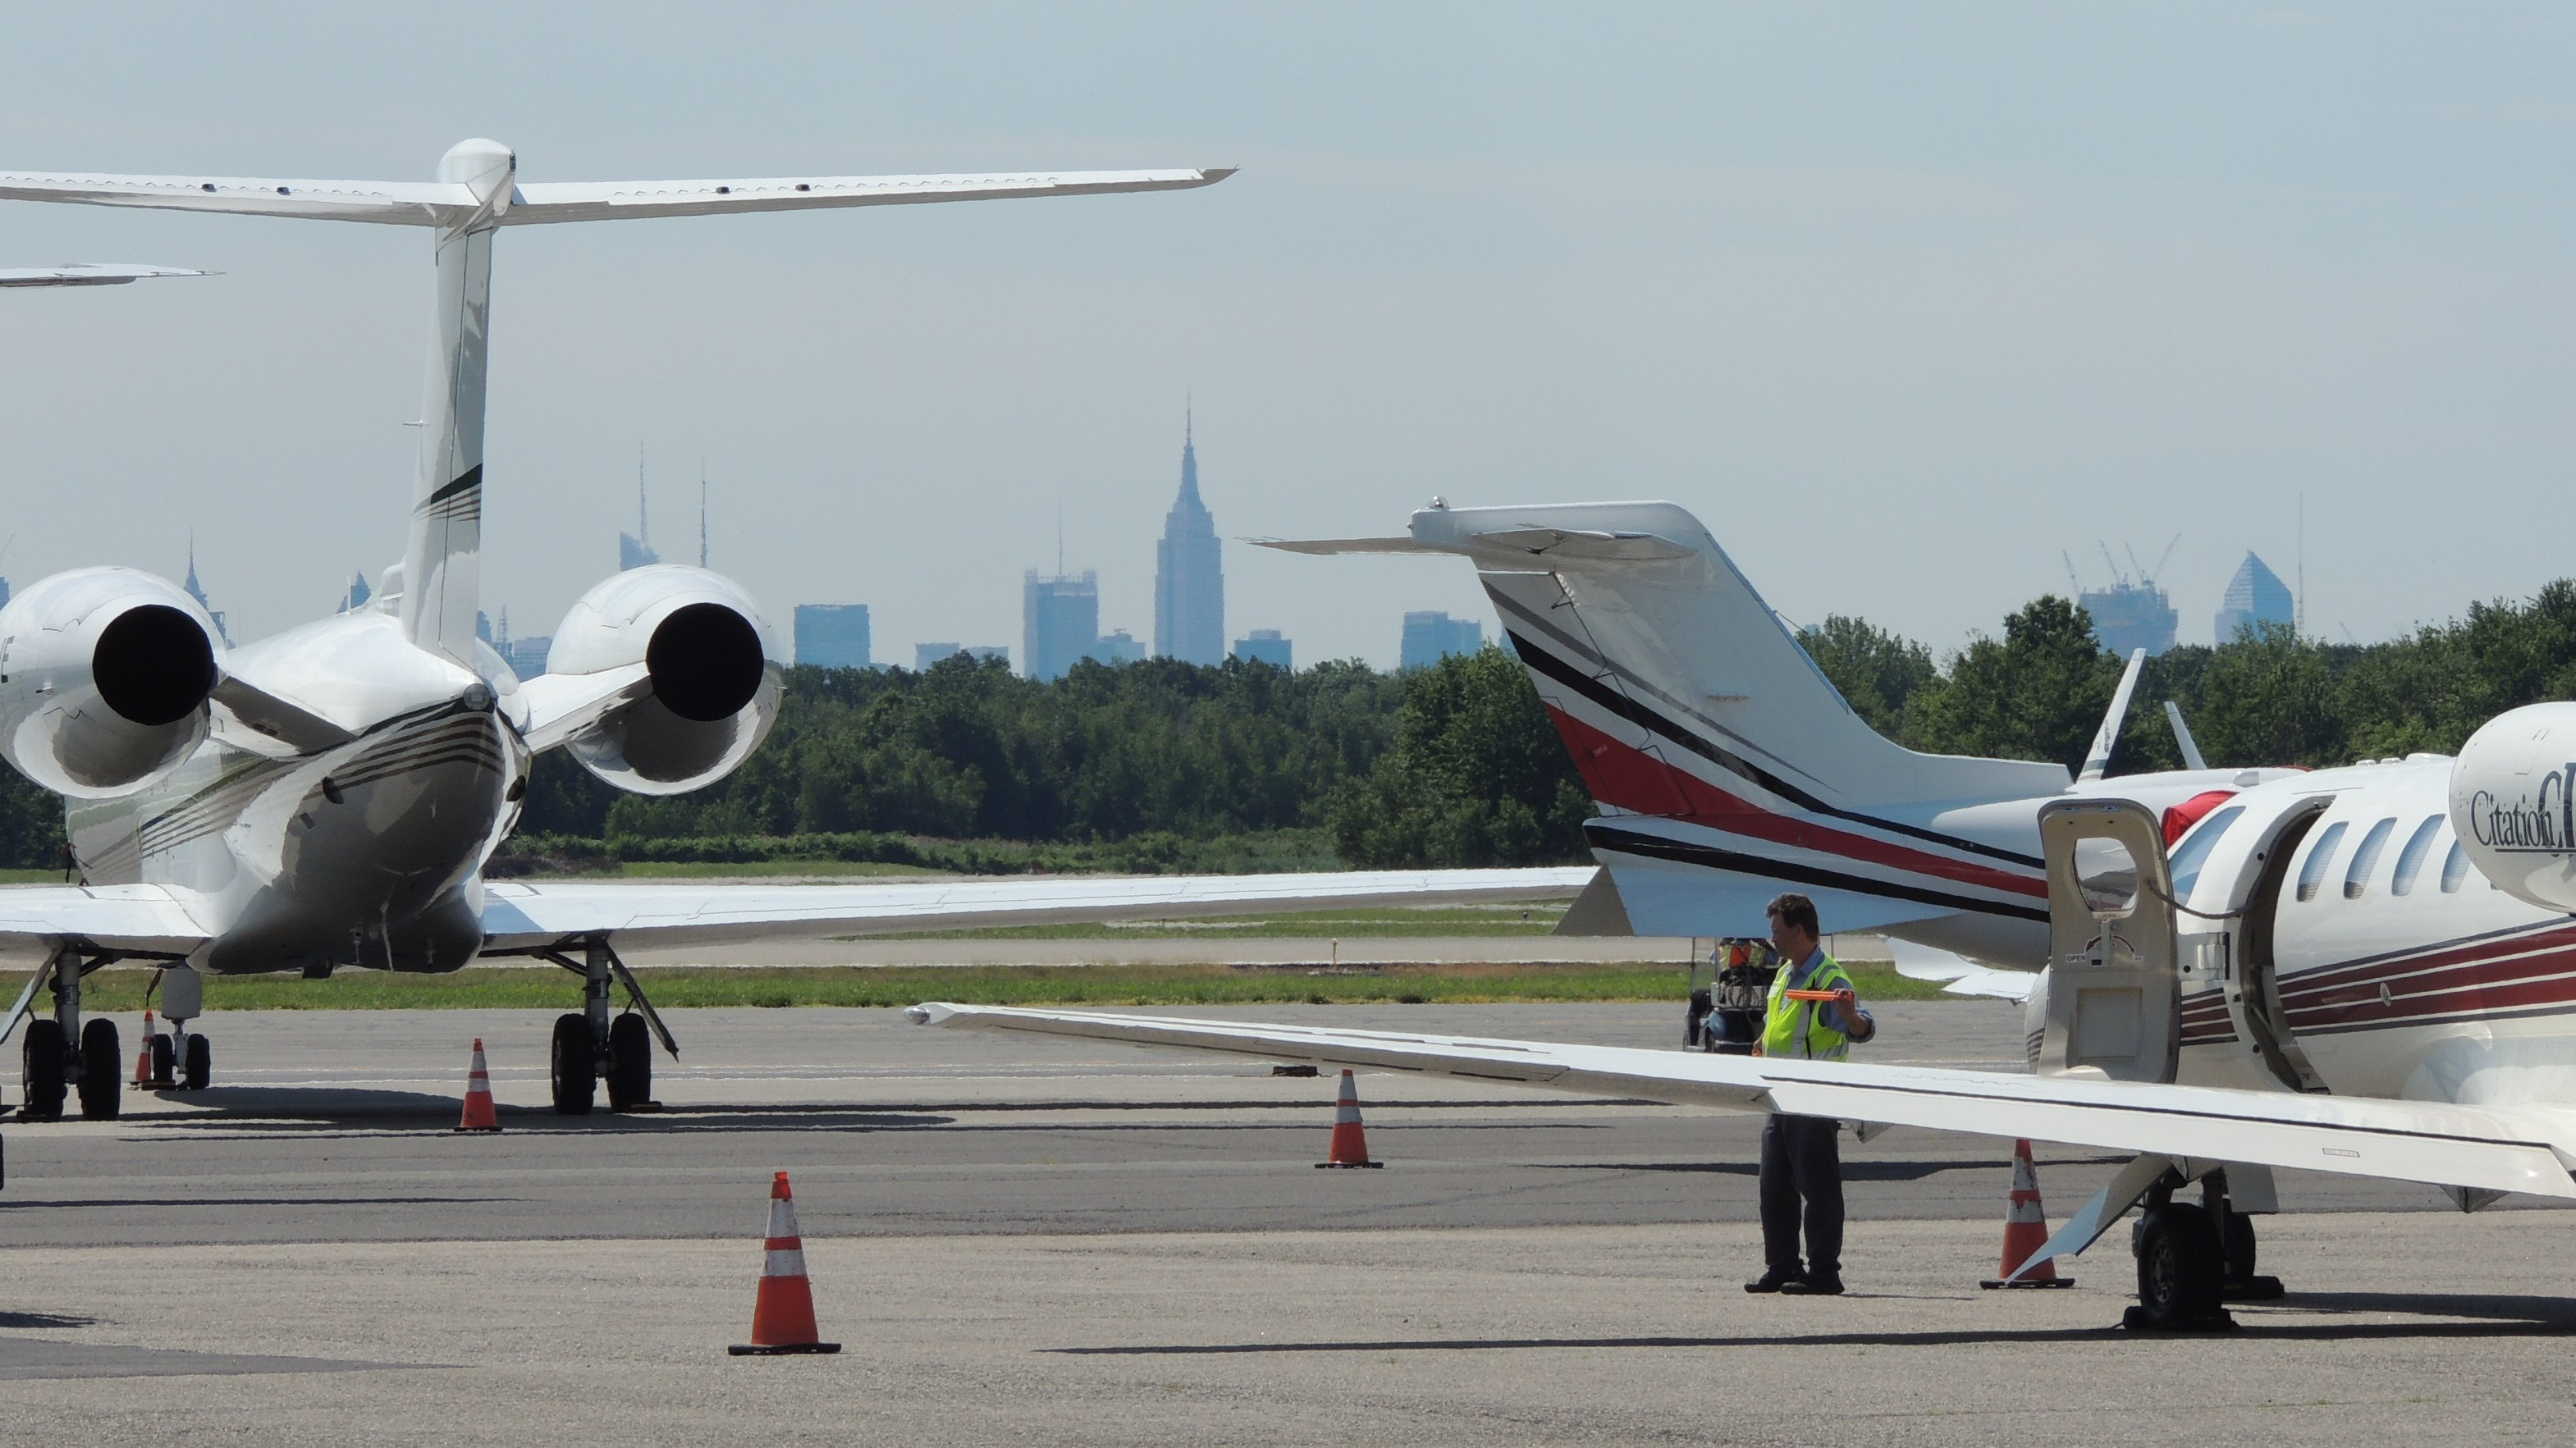 On the ground at Teterboro looking towards NYC